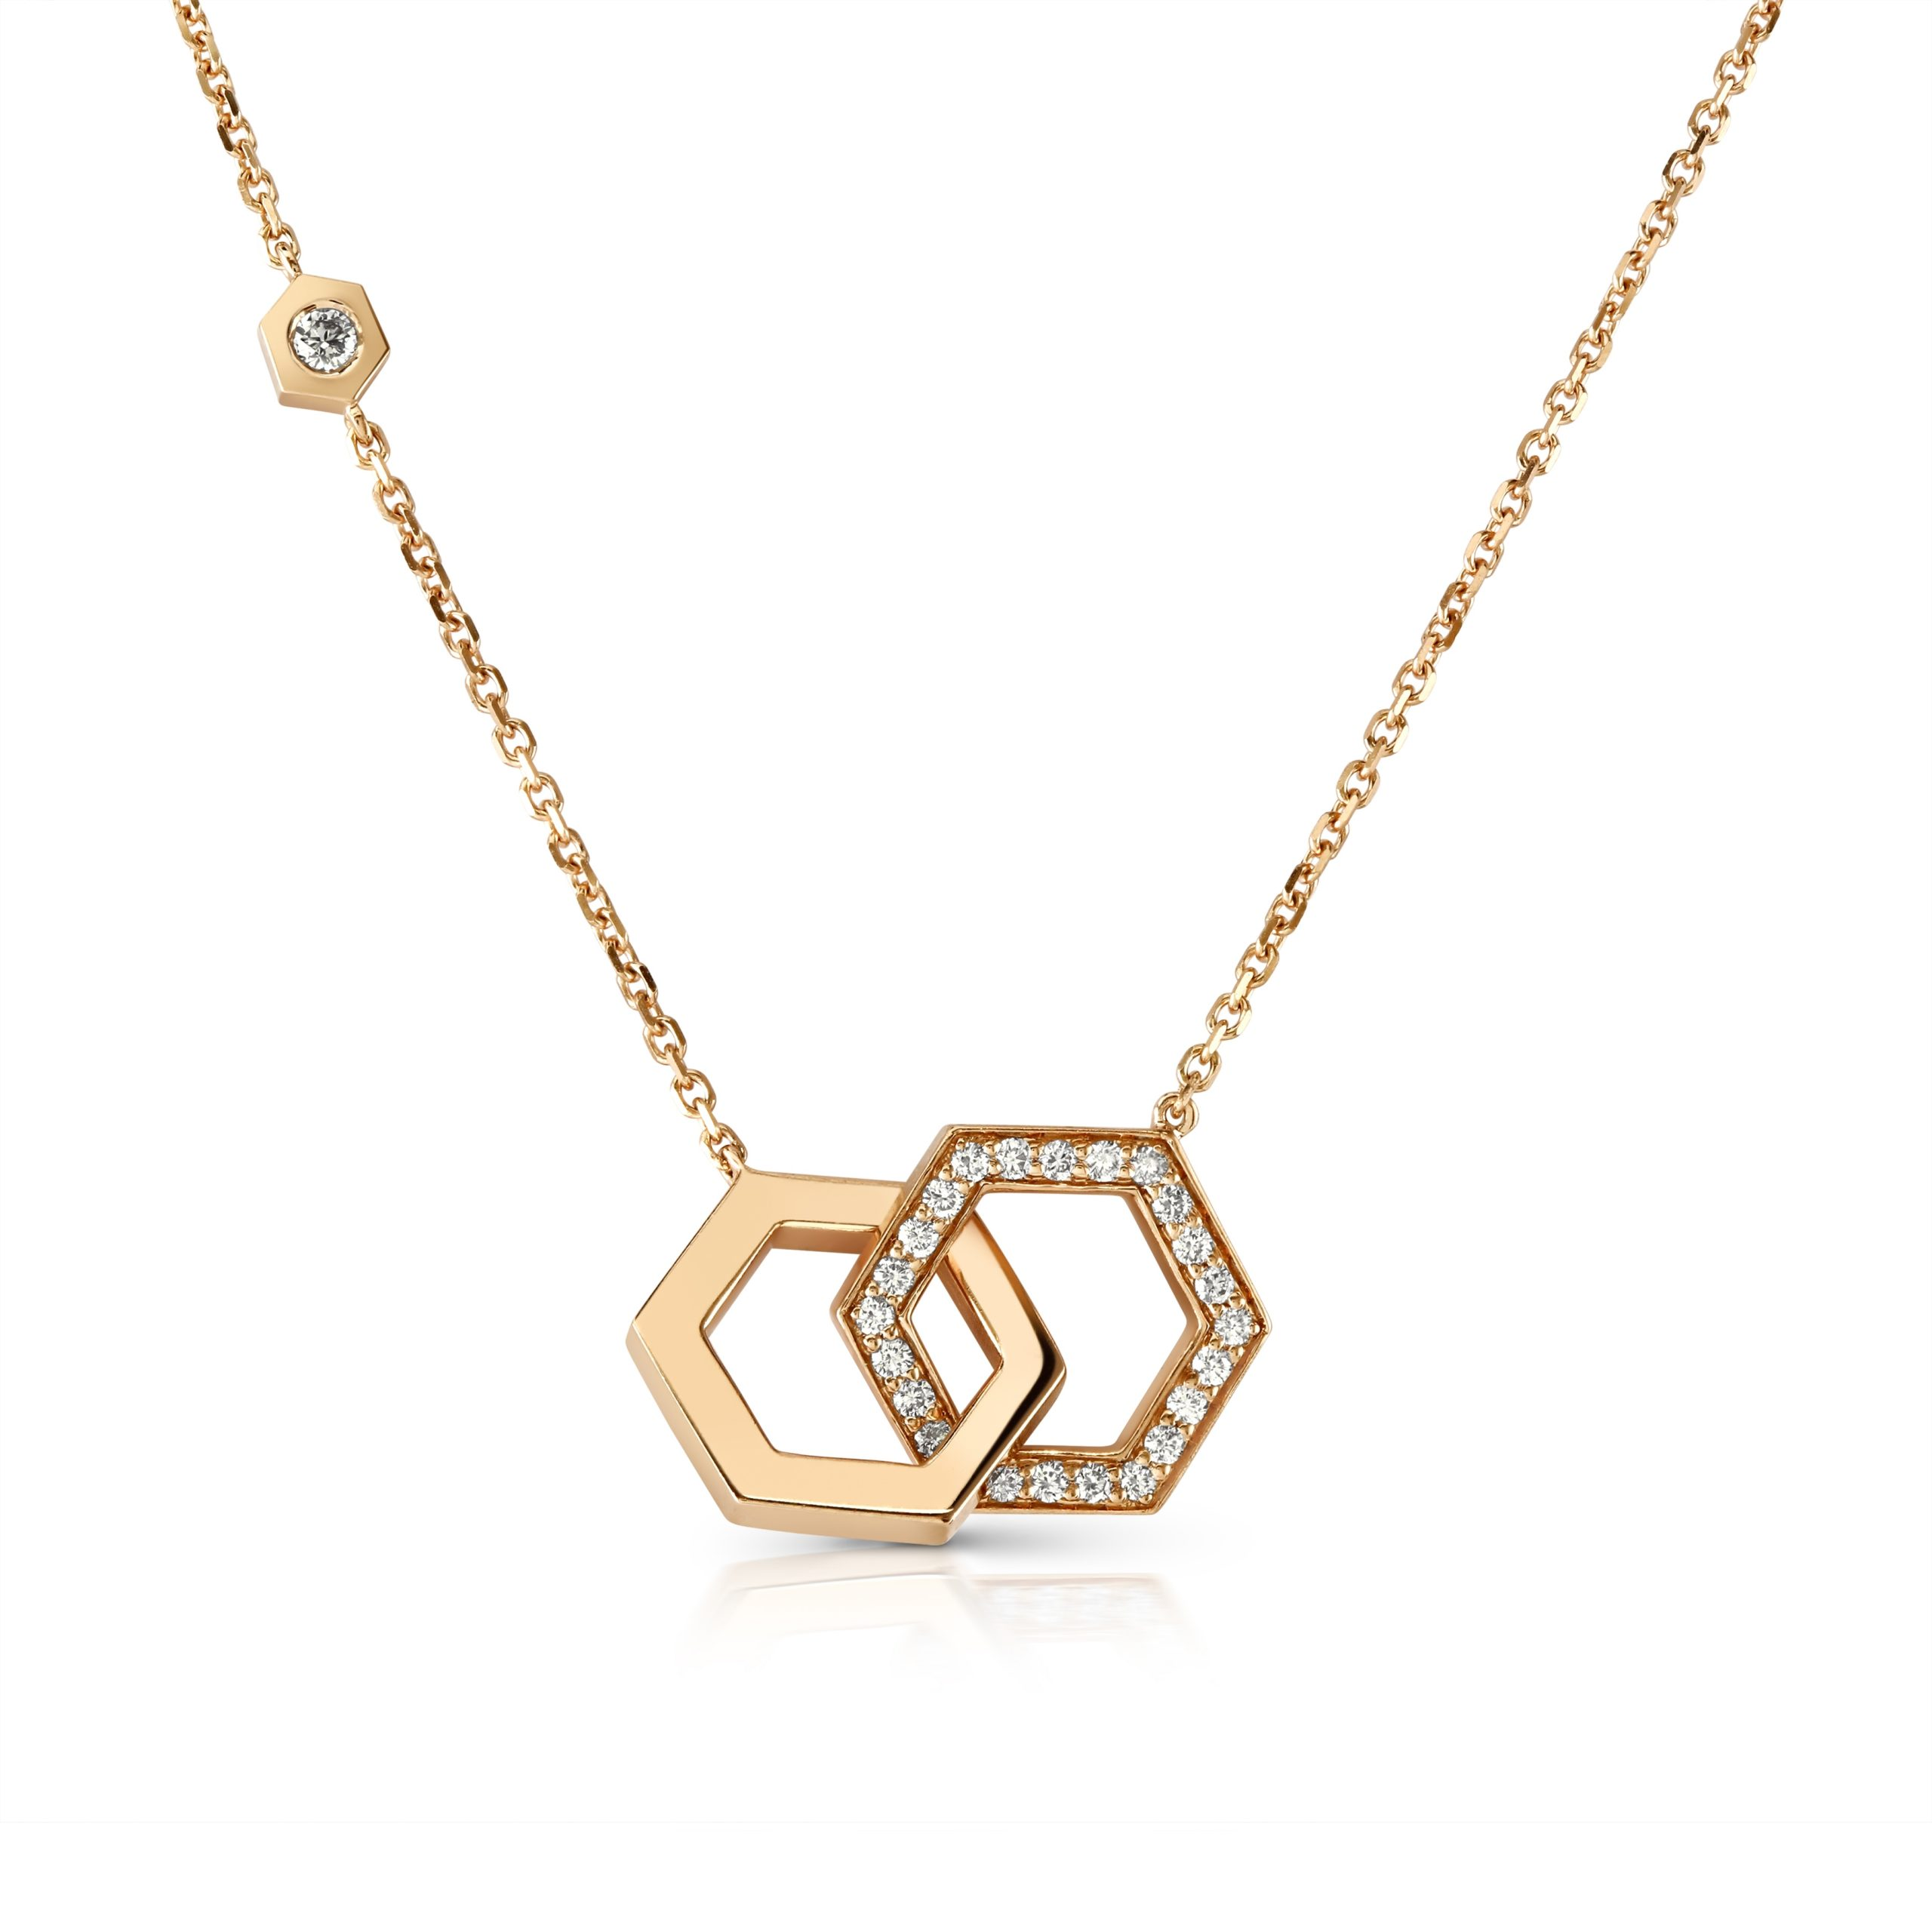 product/h/o/honeycomb_necklace.jpg;;product/n/e/necklace-crop.jpg